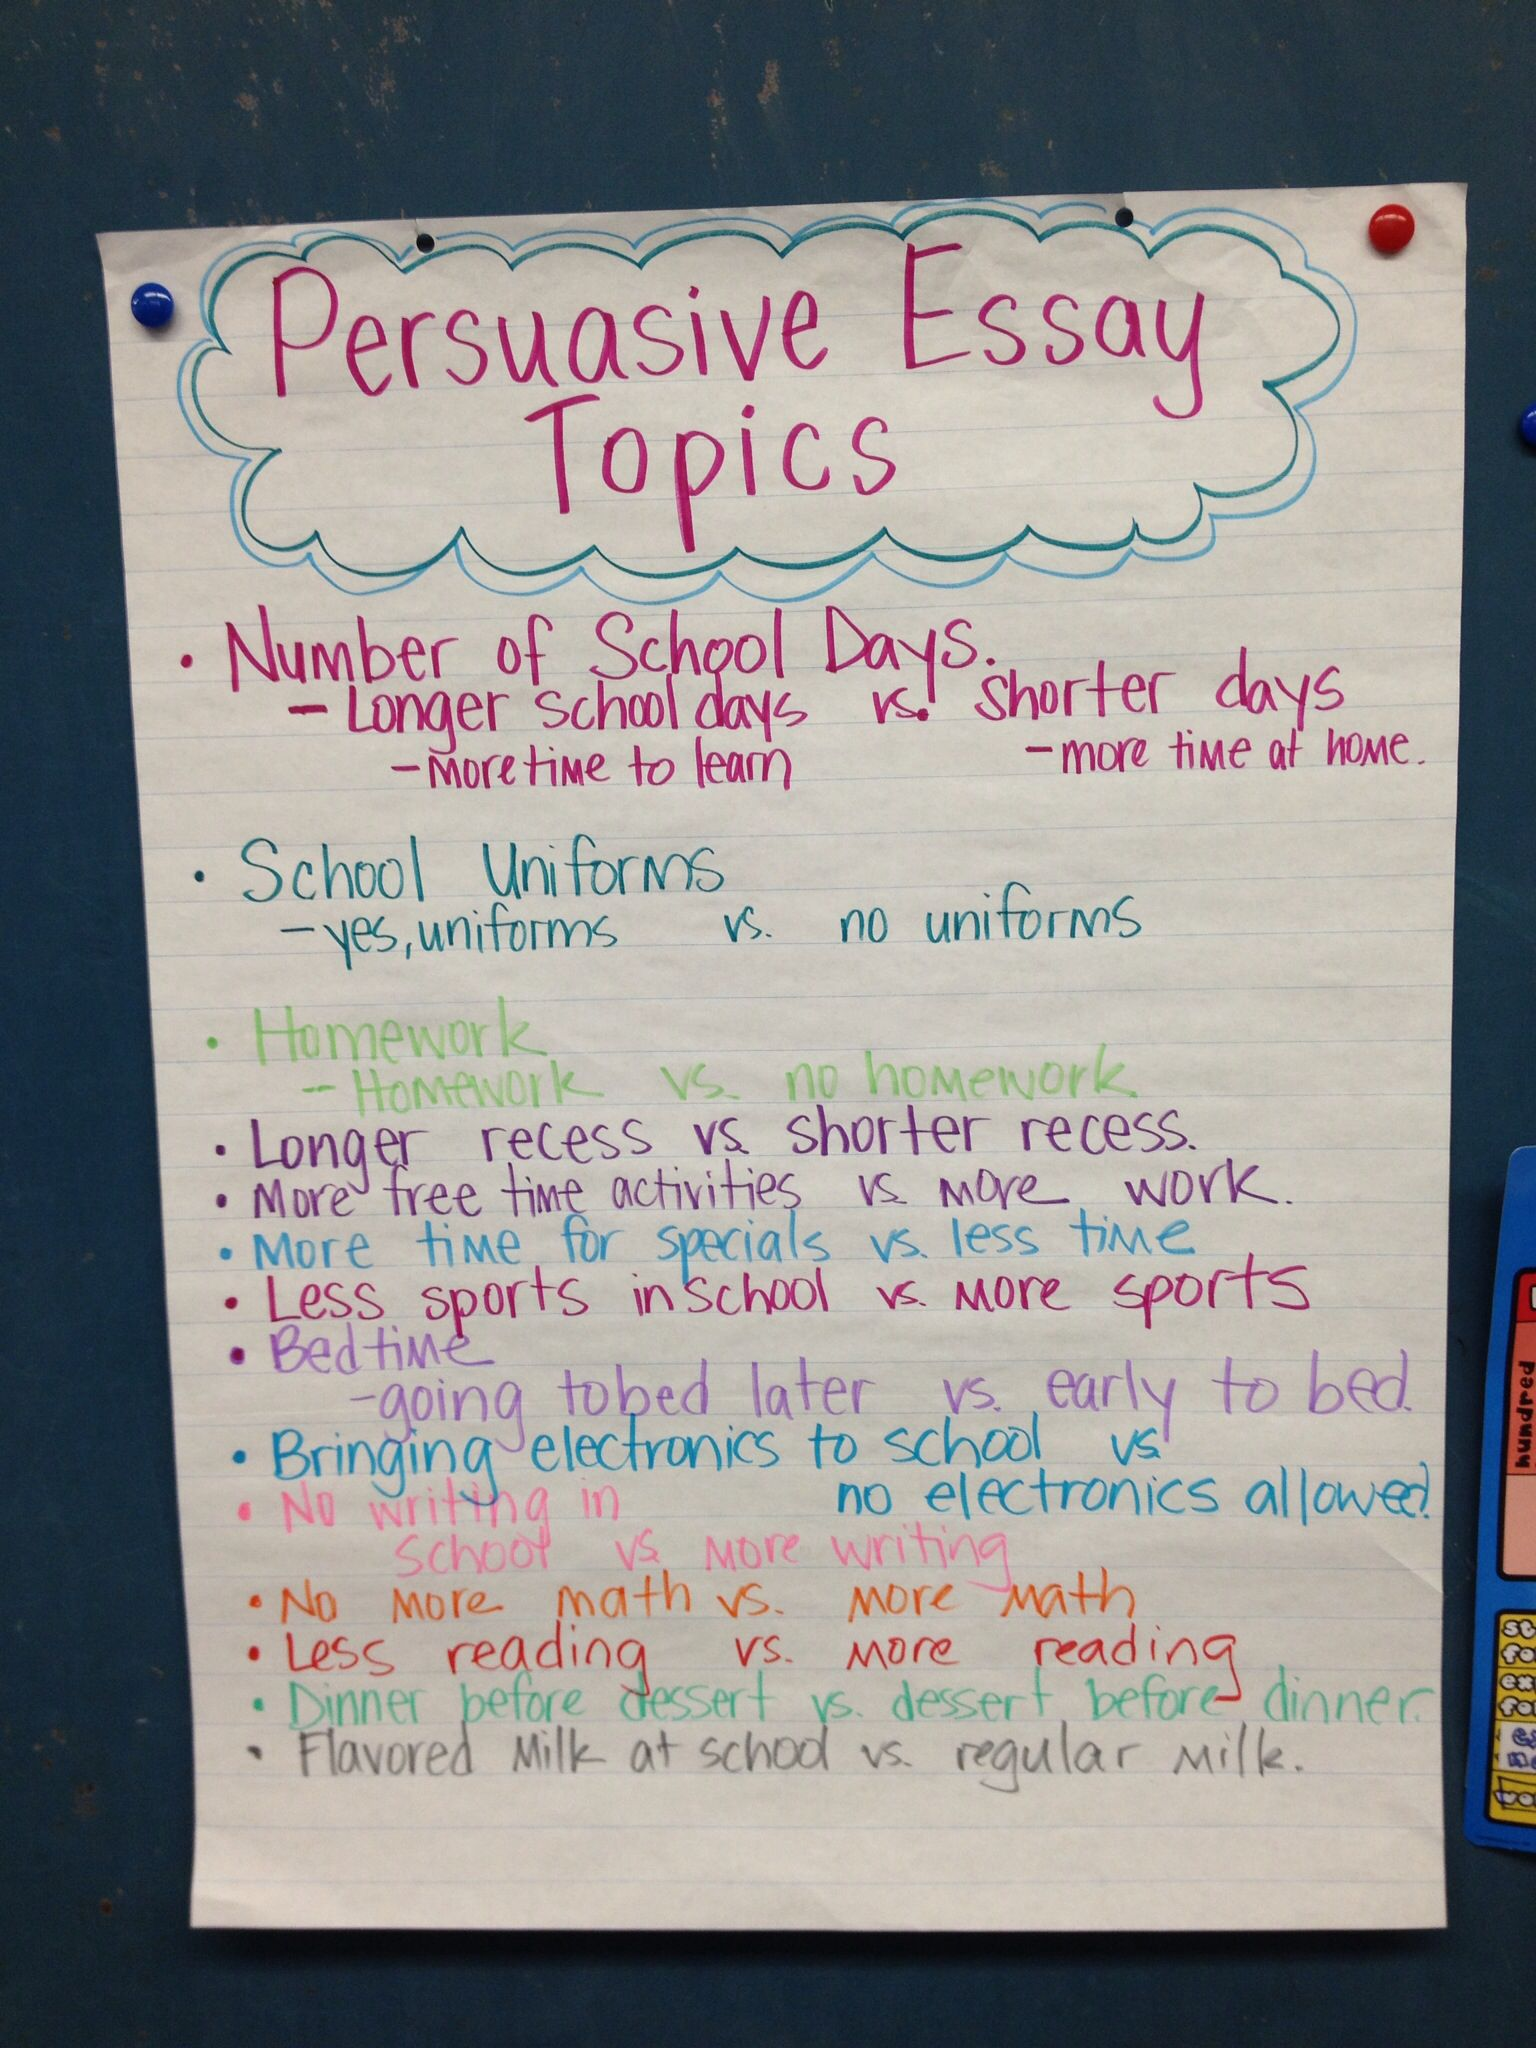 topics to write about for a persuasive essay This list of 60 persuasive essay and speech topics includes topics grouped by society, culture, education, personal choices and values click for the list.